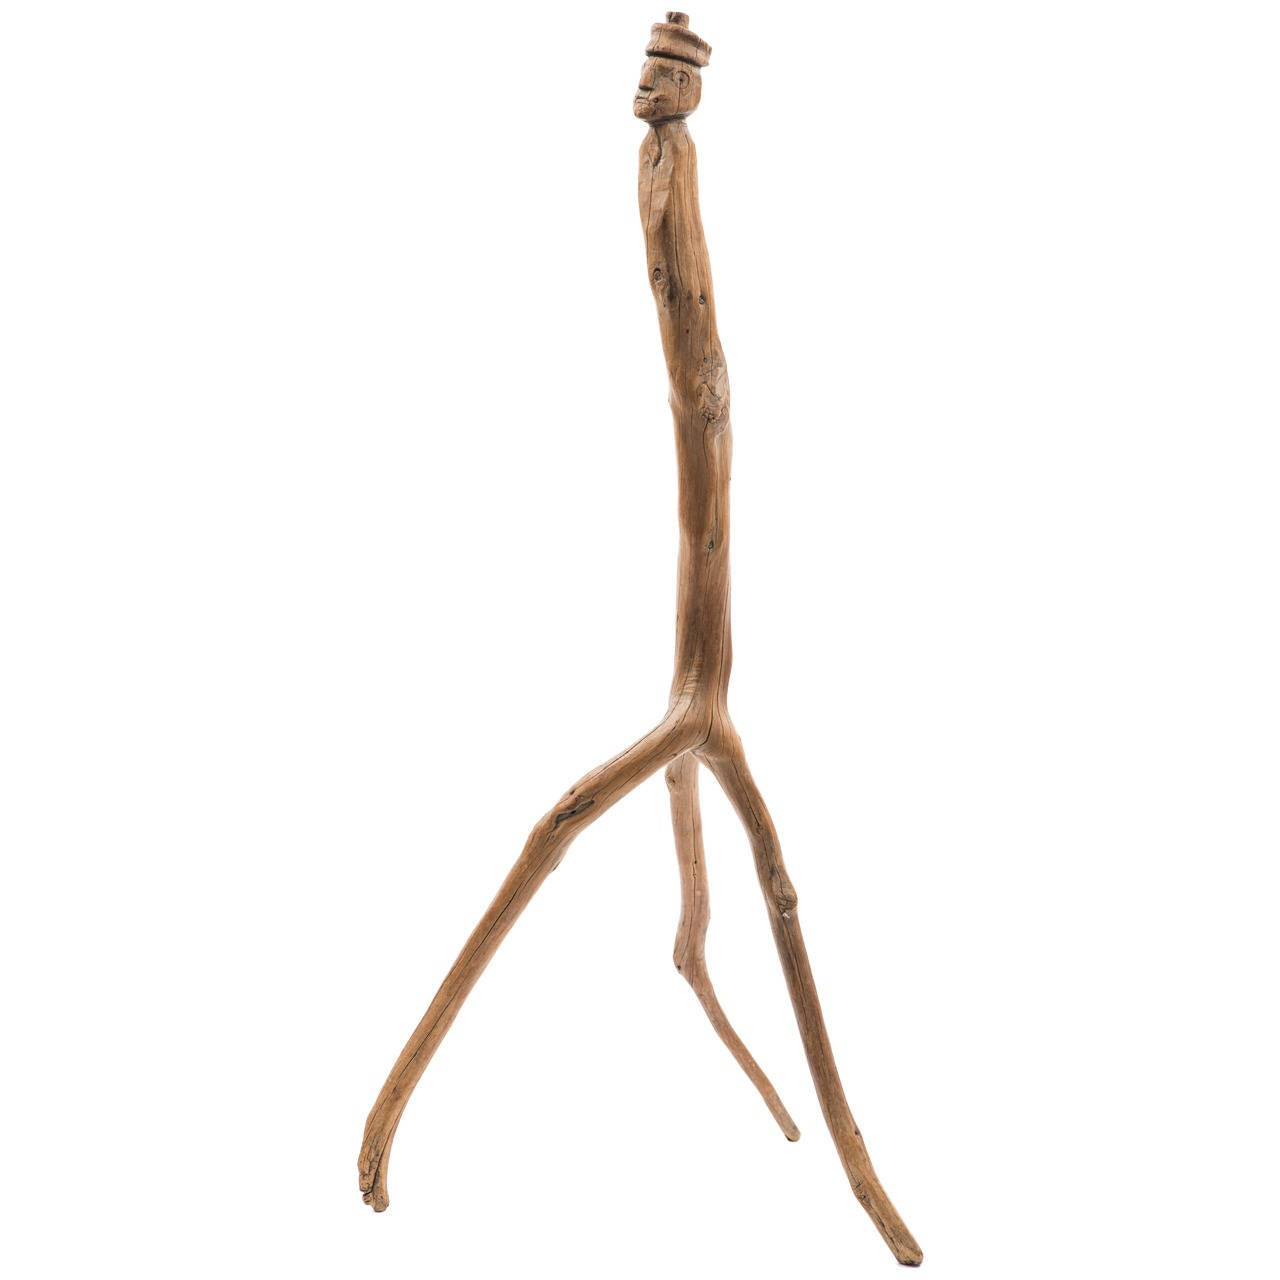 Carved Folk Figure Cane with Branch Legs